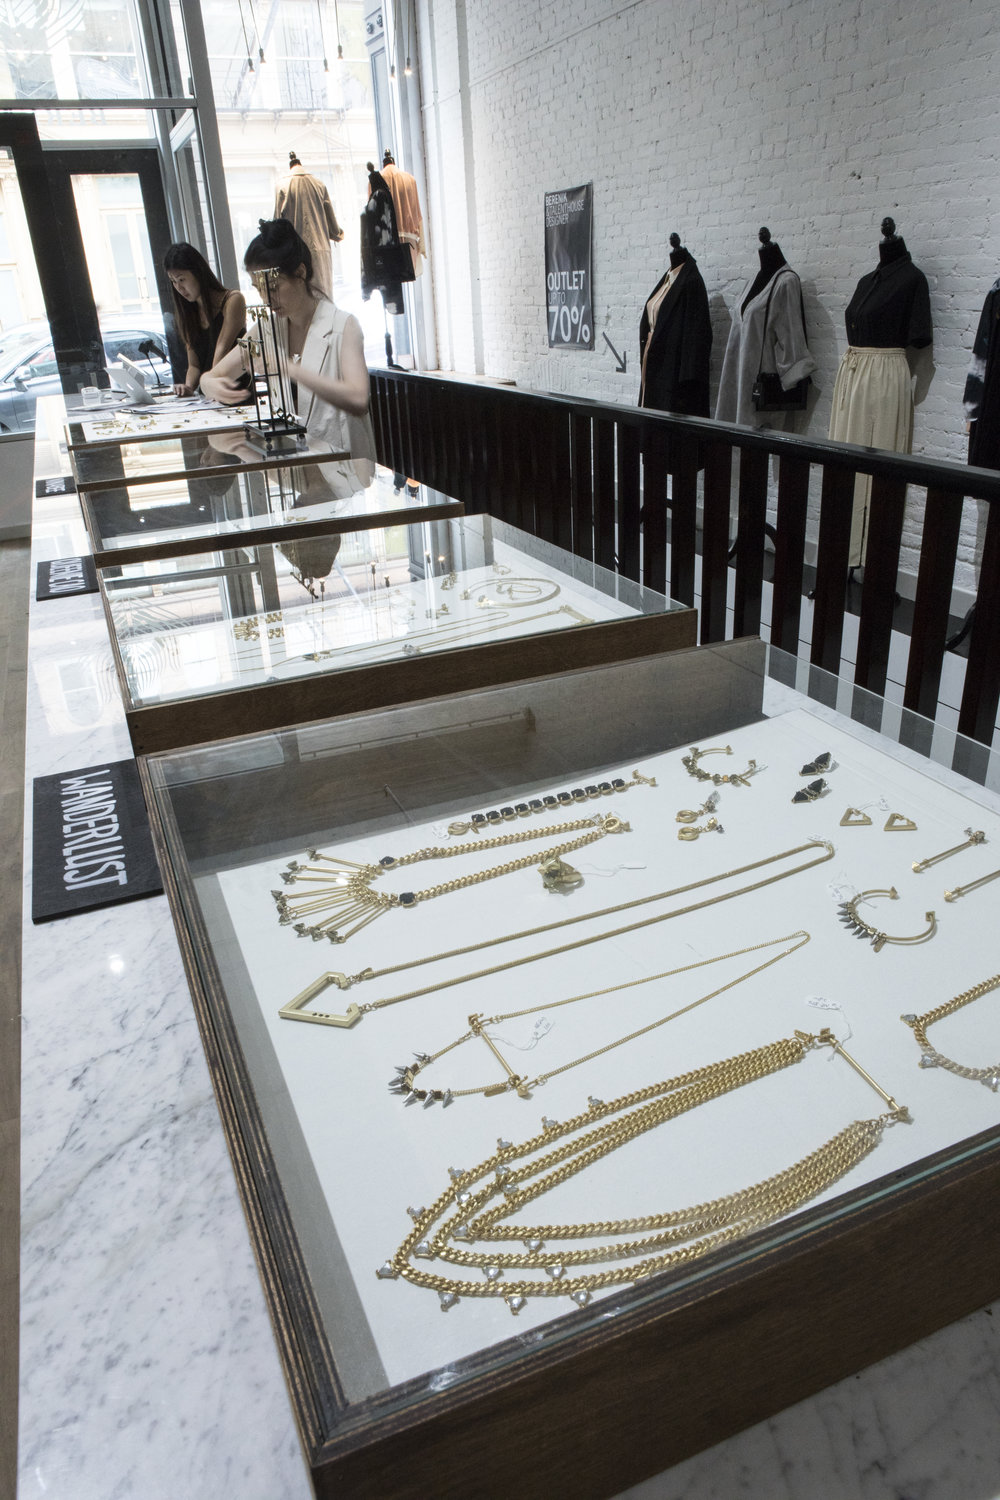 "vitrine + 2 displays GROUNDFLOOR on cashier desk jewelry sunglasses small OBJECTS 24x24"" 800 usd / month"